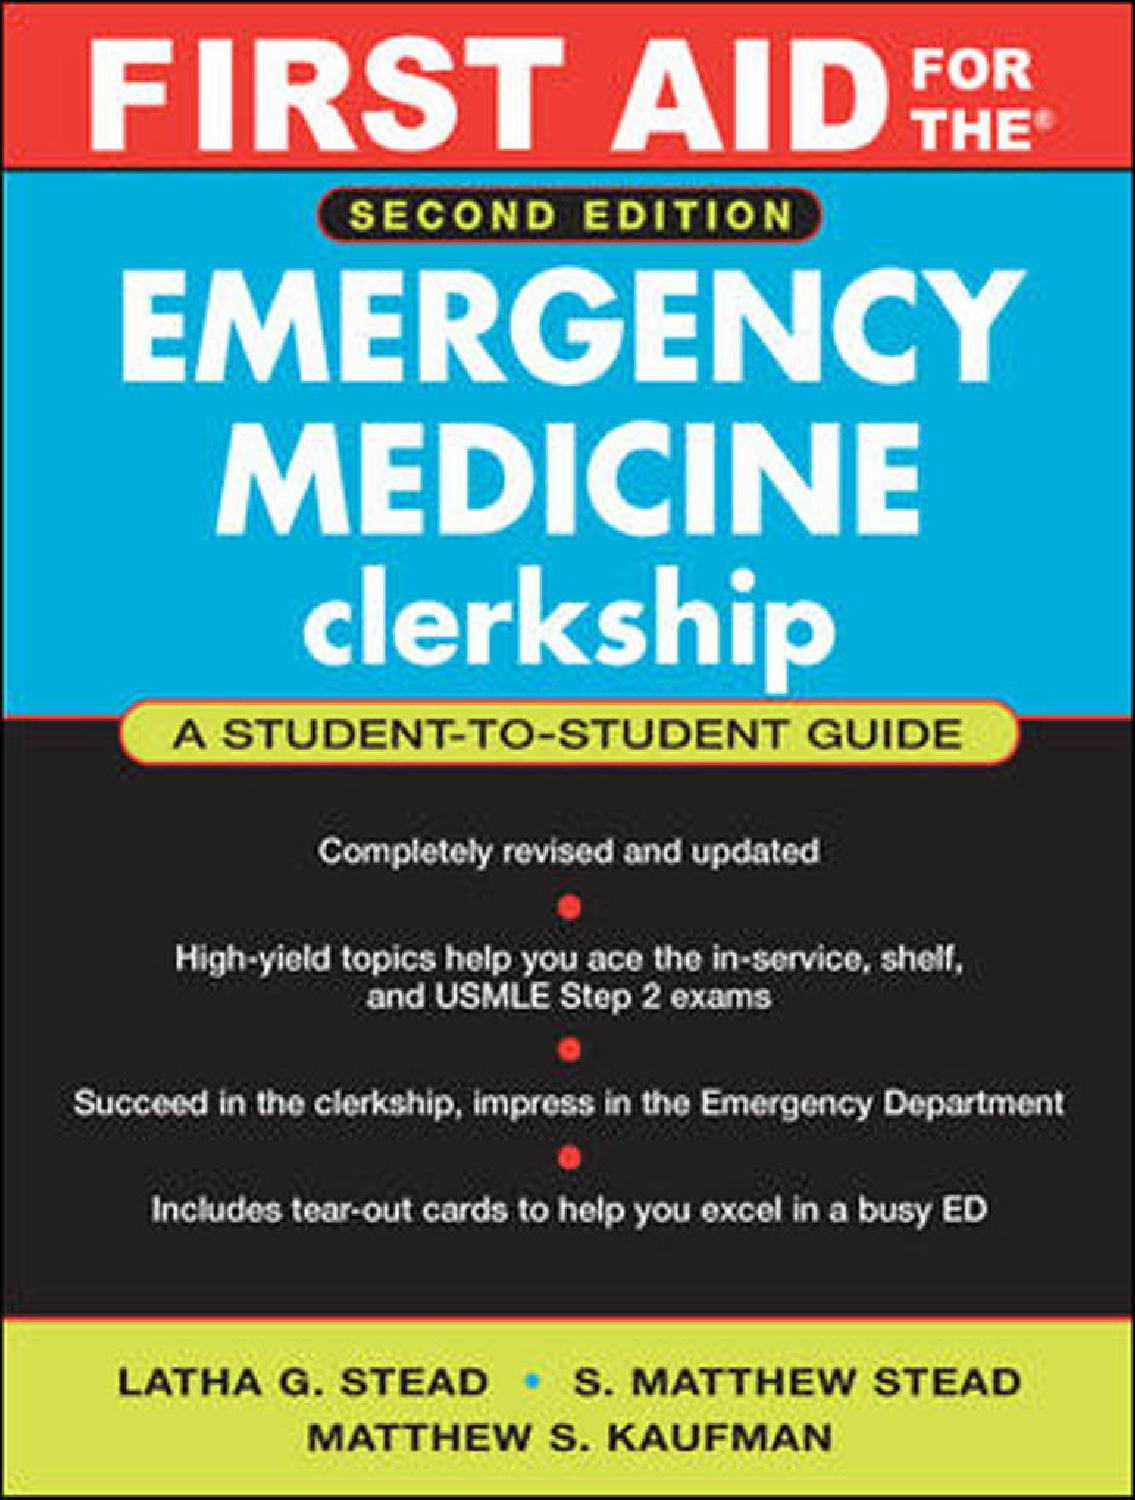 First aid emergency medicine by rosana rosa issuu fandeluxe Choice Image